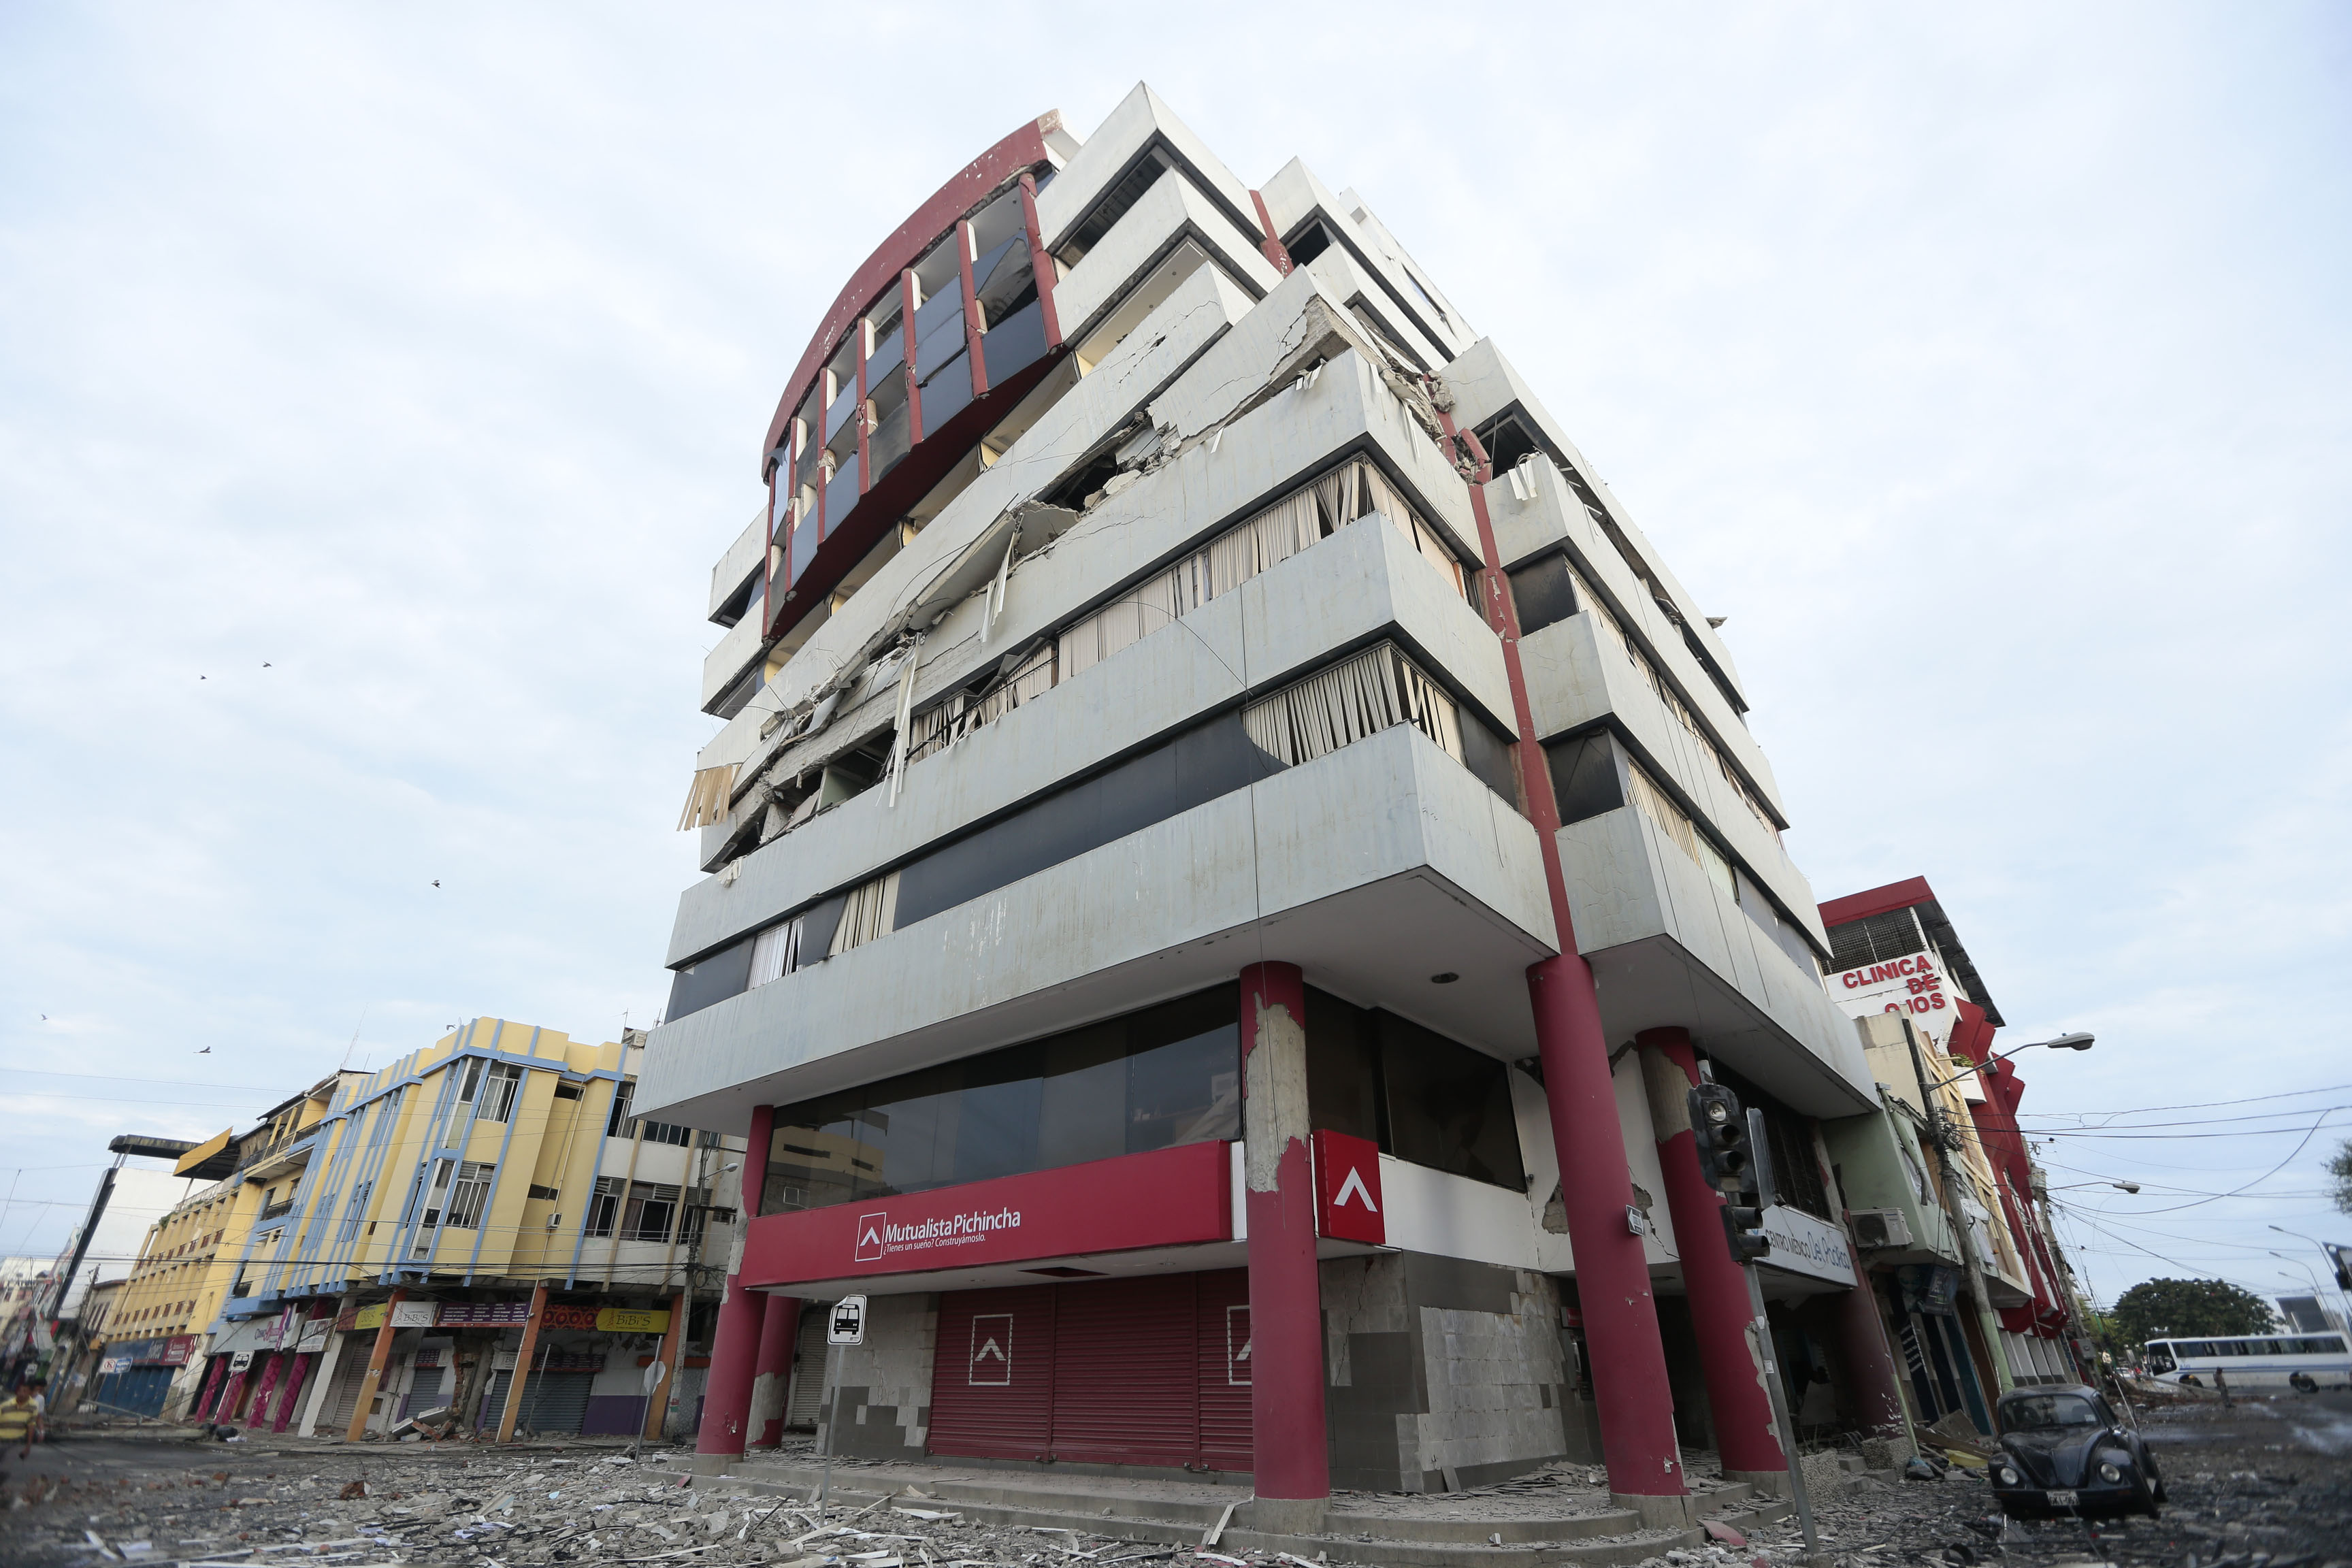 View of a damaged building after a 7.8-magnitude quake in Portoviejo, Ecuador on April 17, 2016. At least 77 people were killed when a powerful earthquake struck Ecuador, destroying buildings and a bridge and sending terrified residents scrambling from their homes, authorities said Sunday. / AFP PHOTO / JUAN CEVALLOS